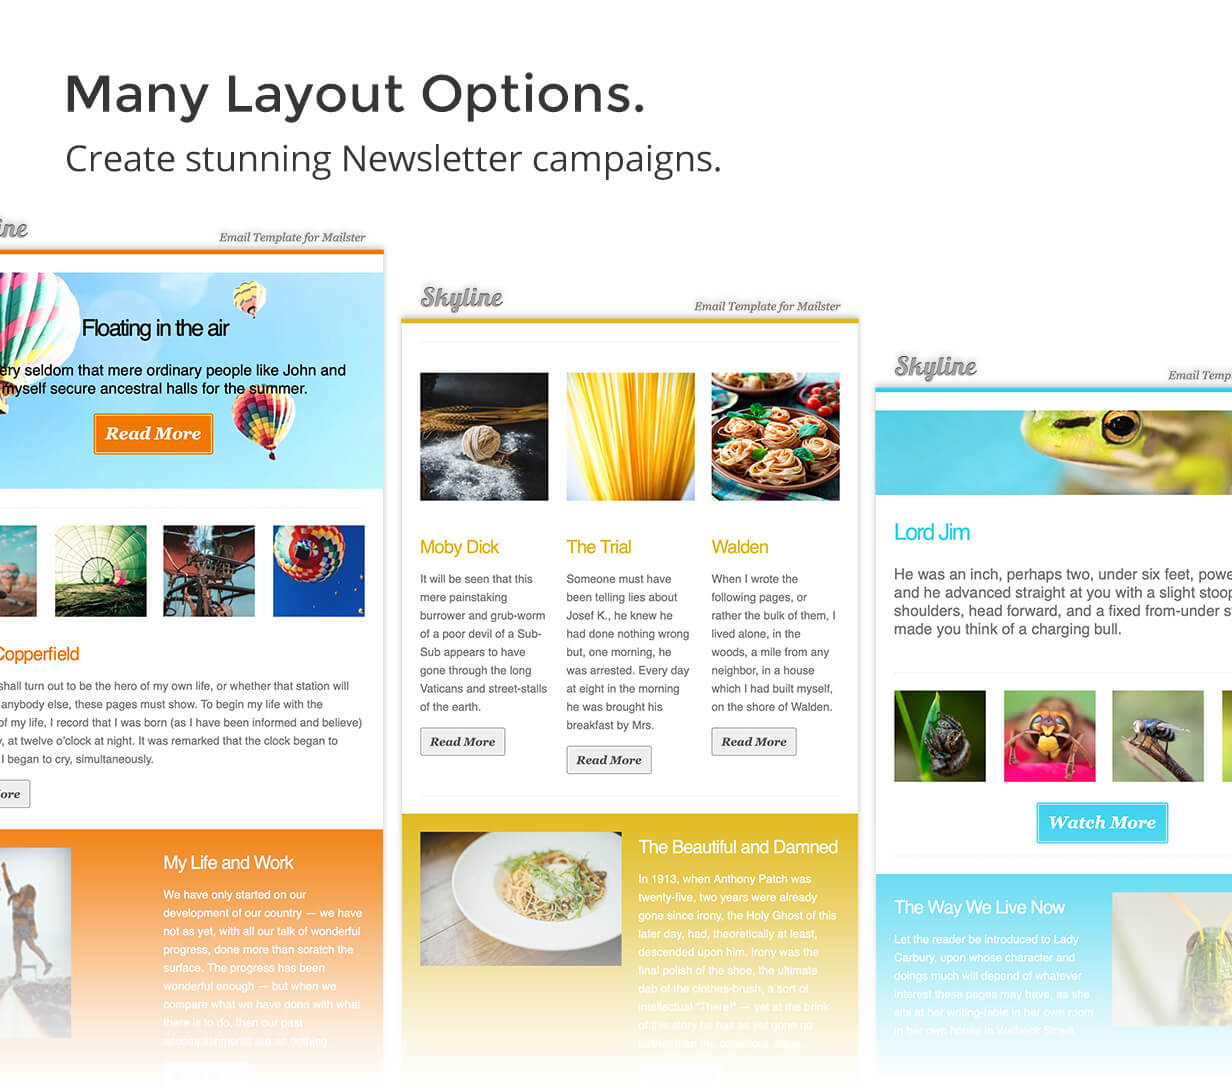 variations - Skyline - Email Template for Mailster